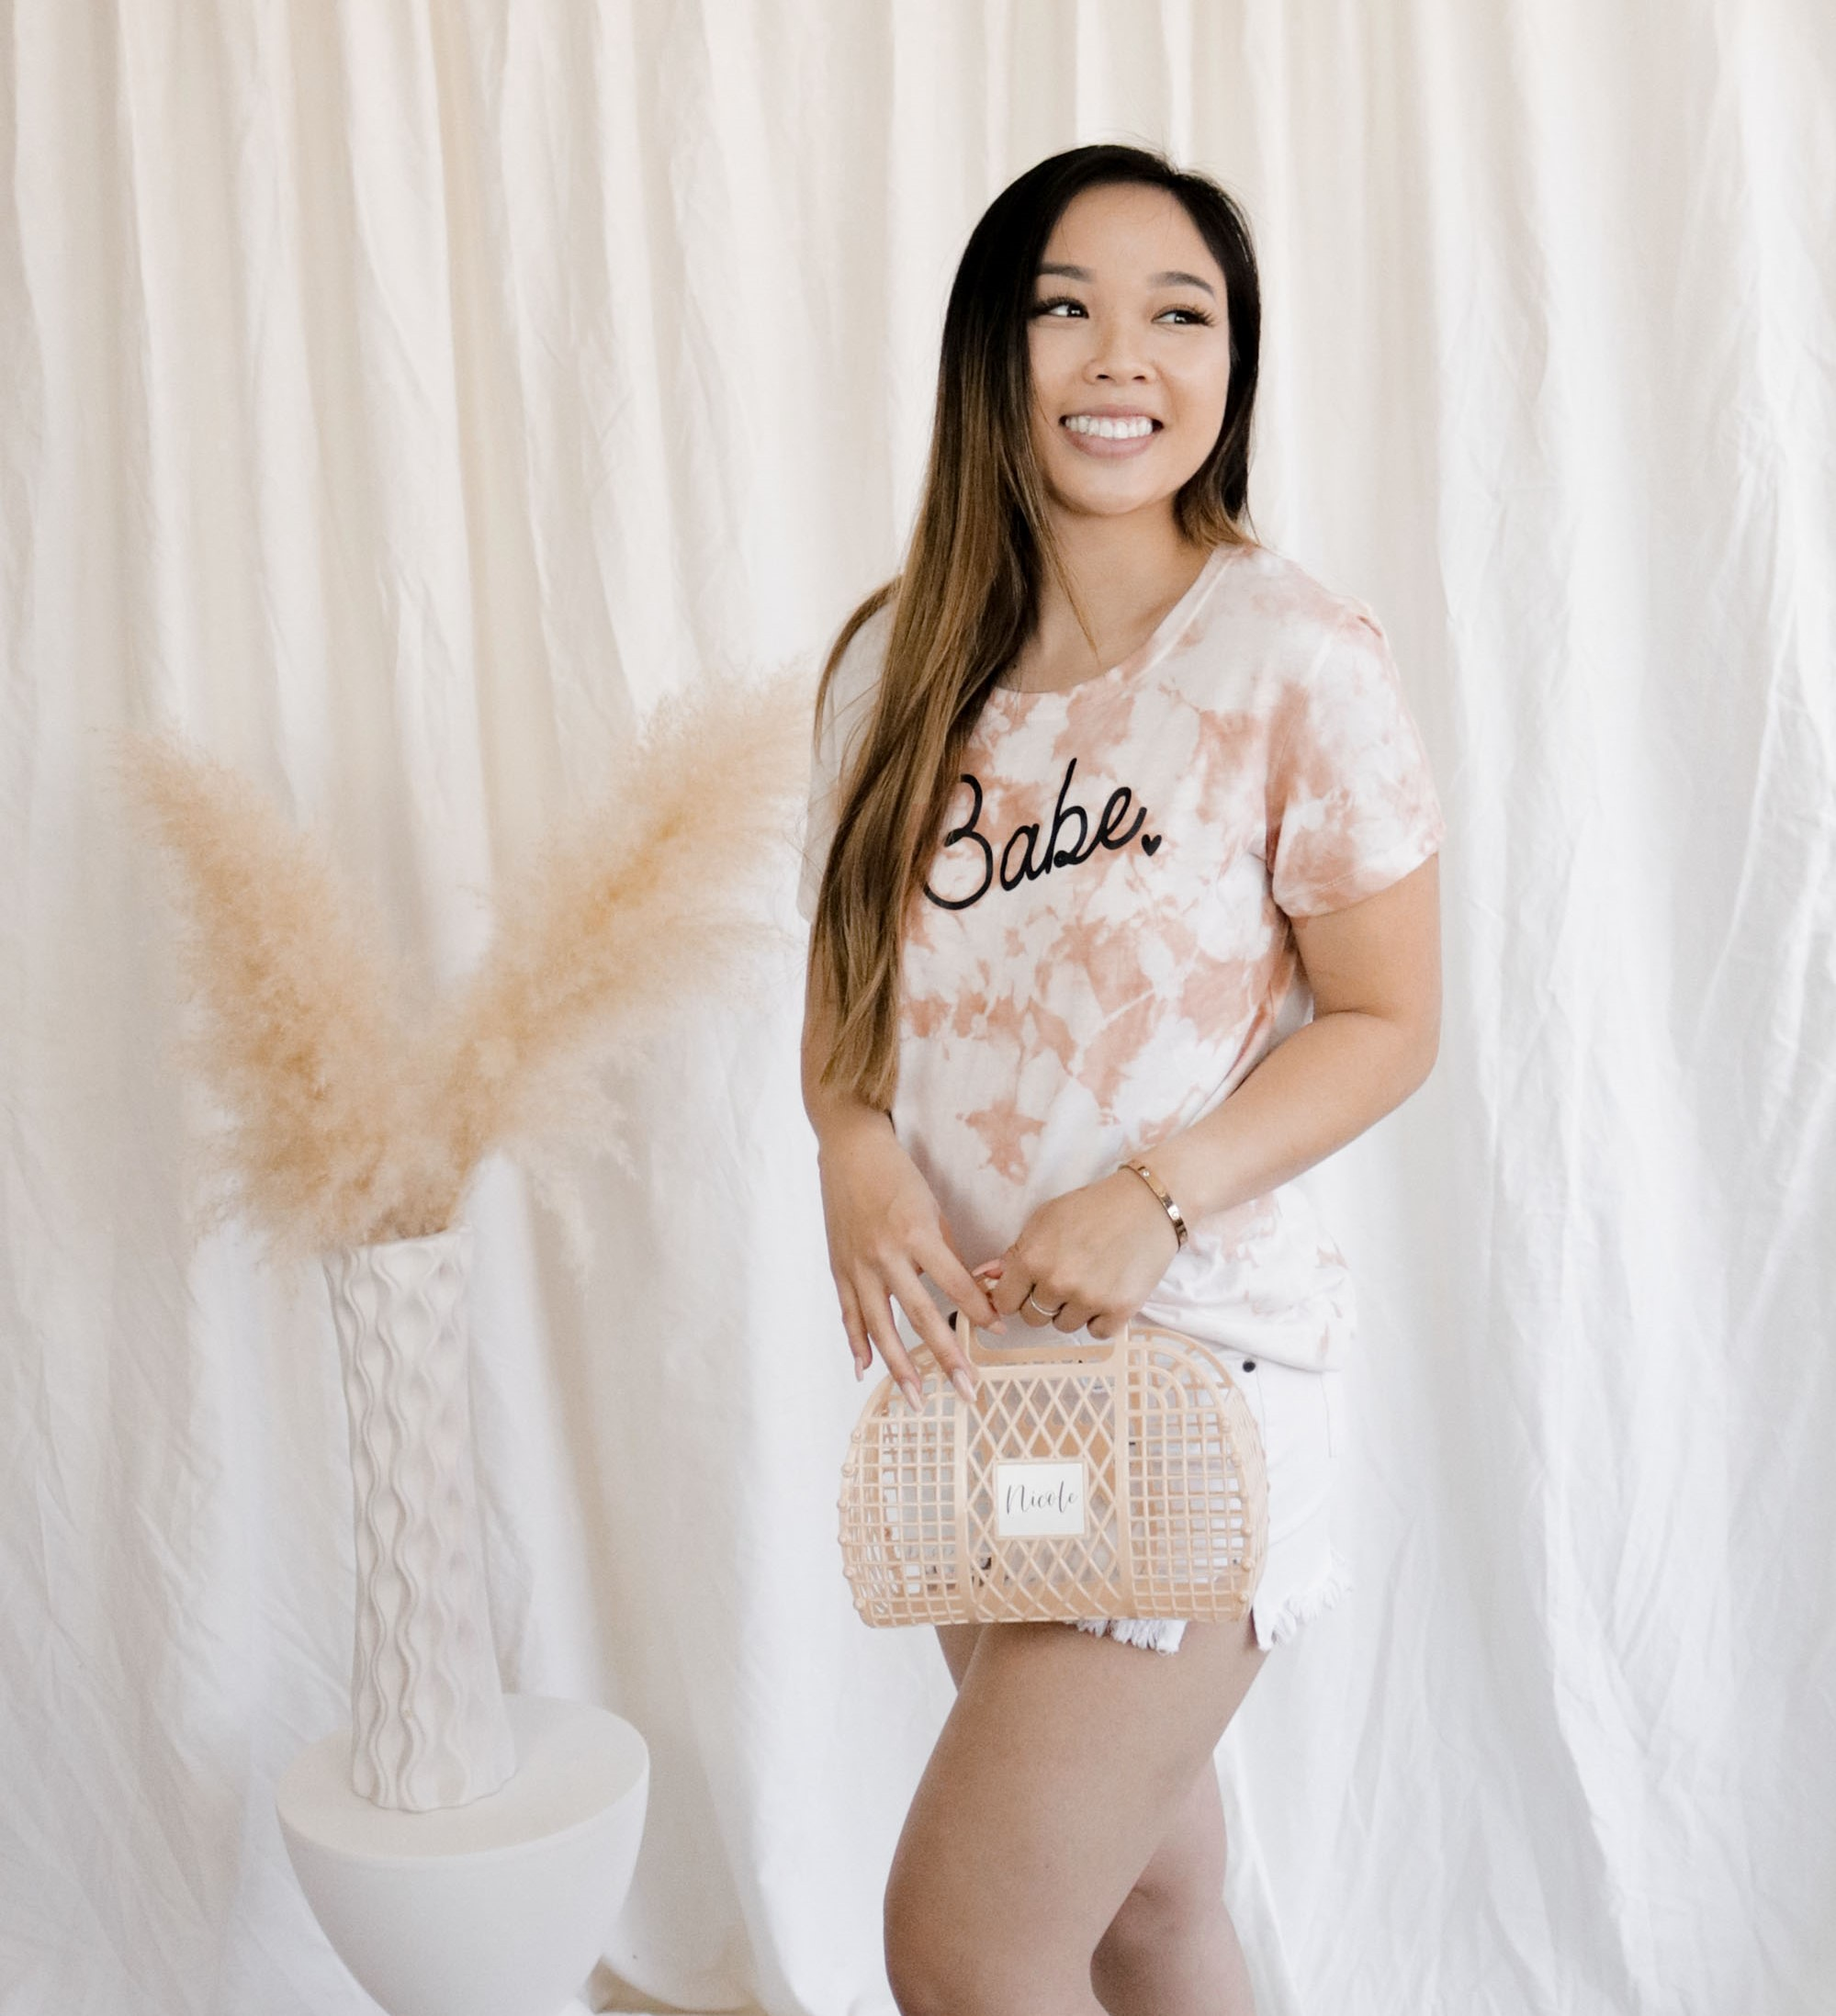 Girl wearing finished DIY tie dye shirt with Babe printed on the front. She is also wearing white shorts and holding a beige jelly bag with the name Nicole on the front